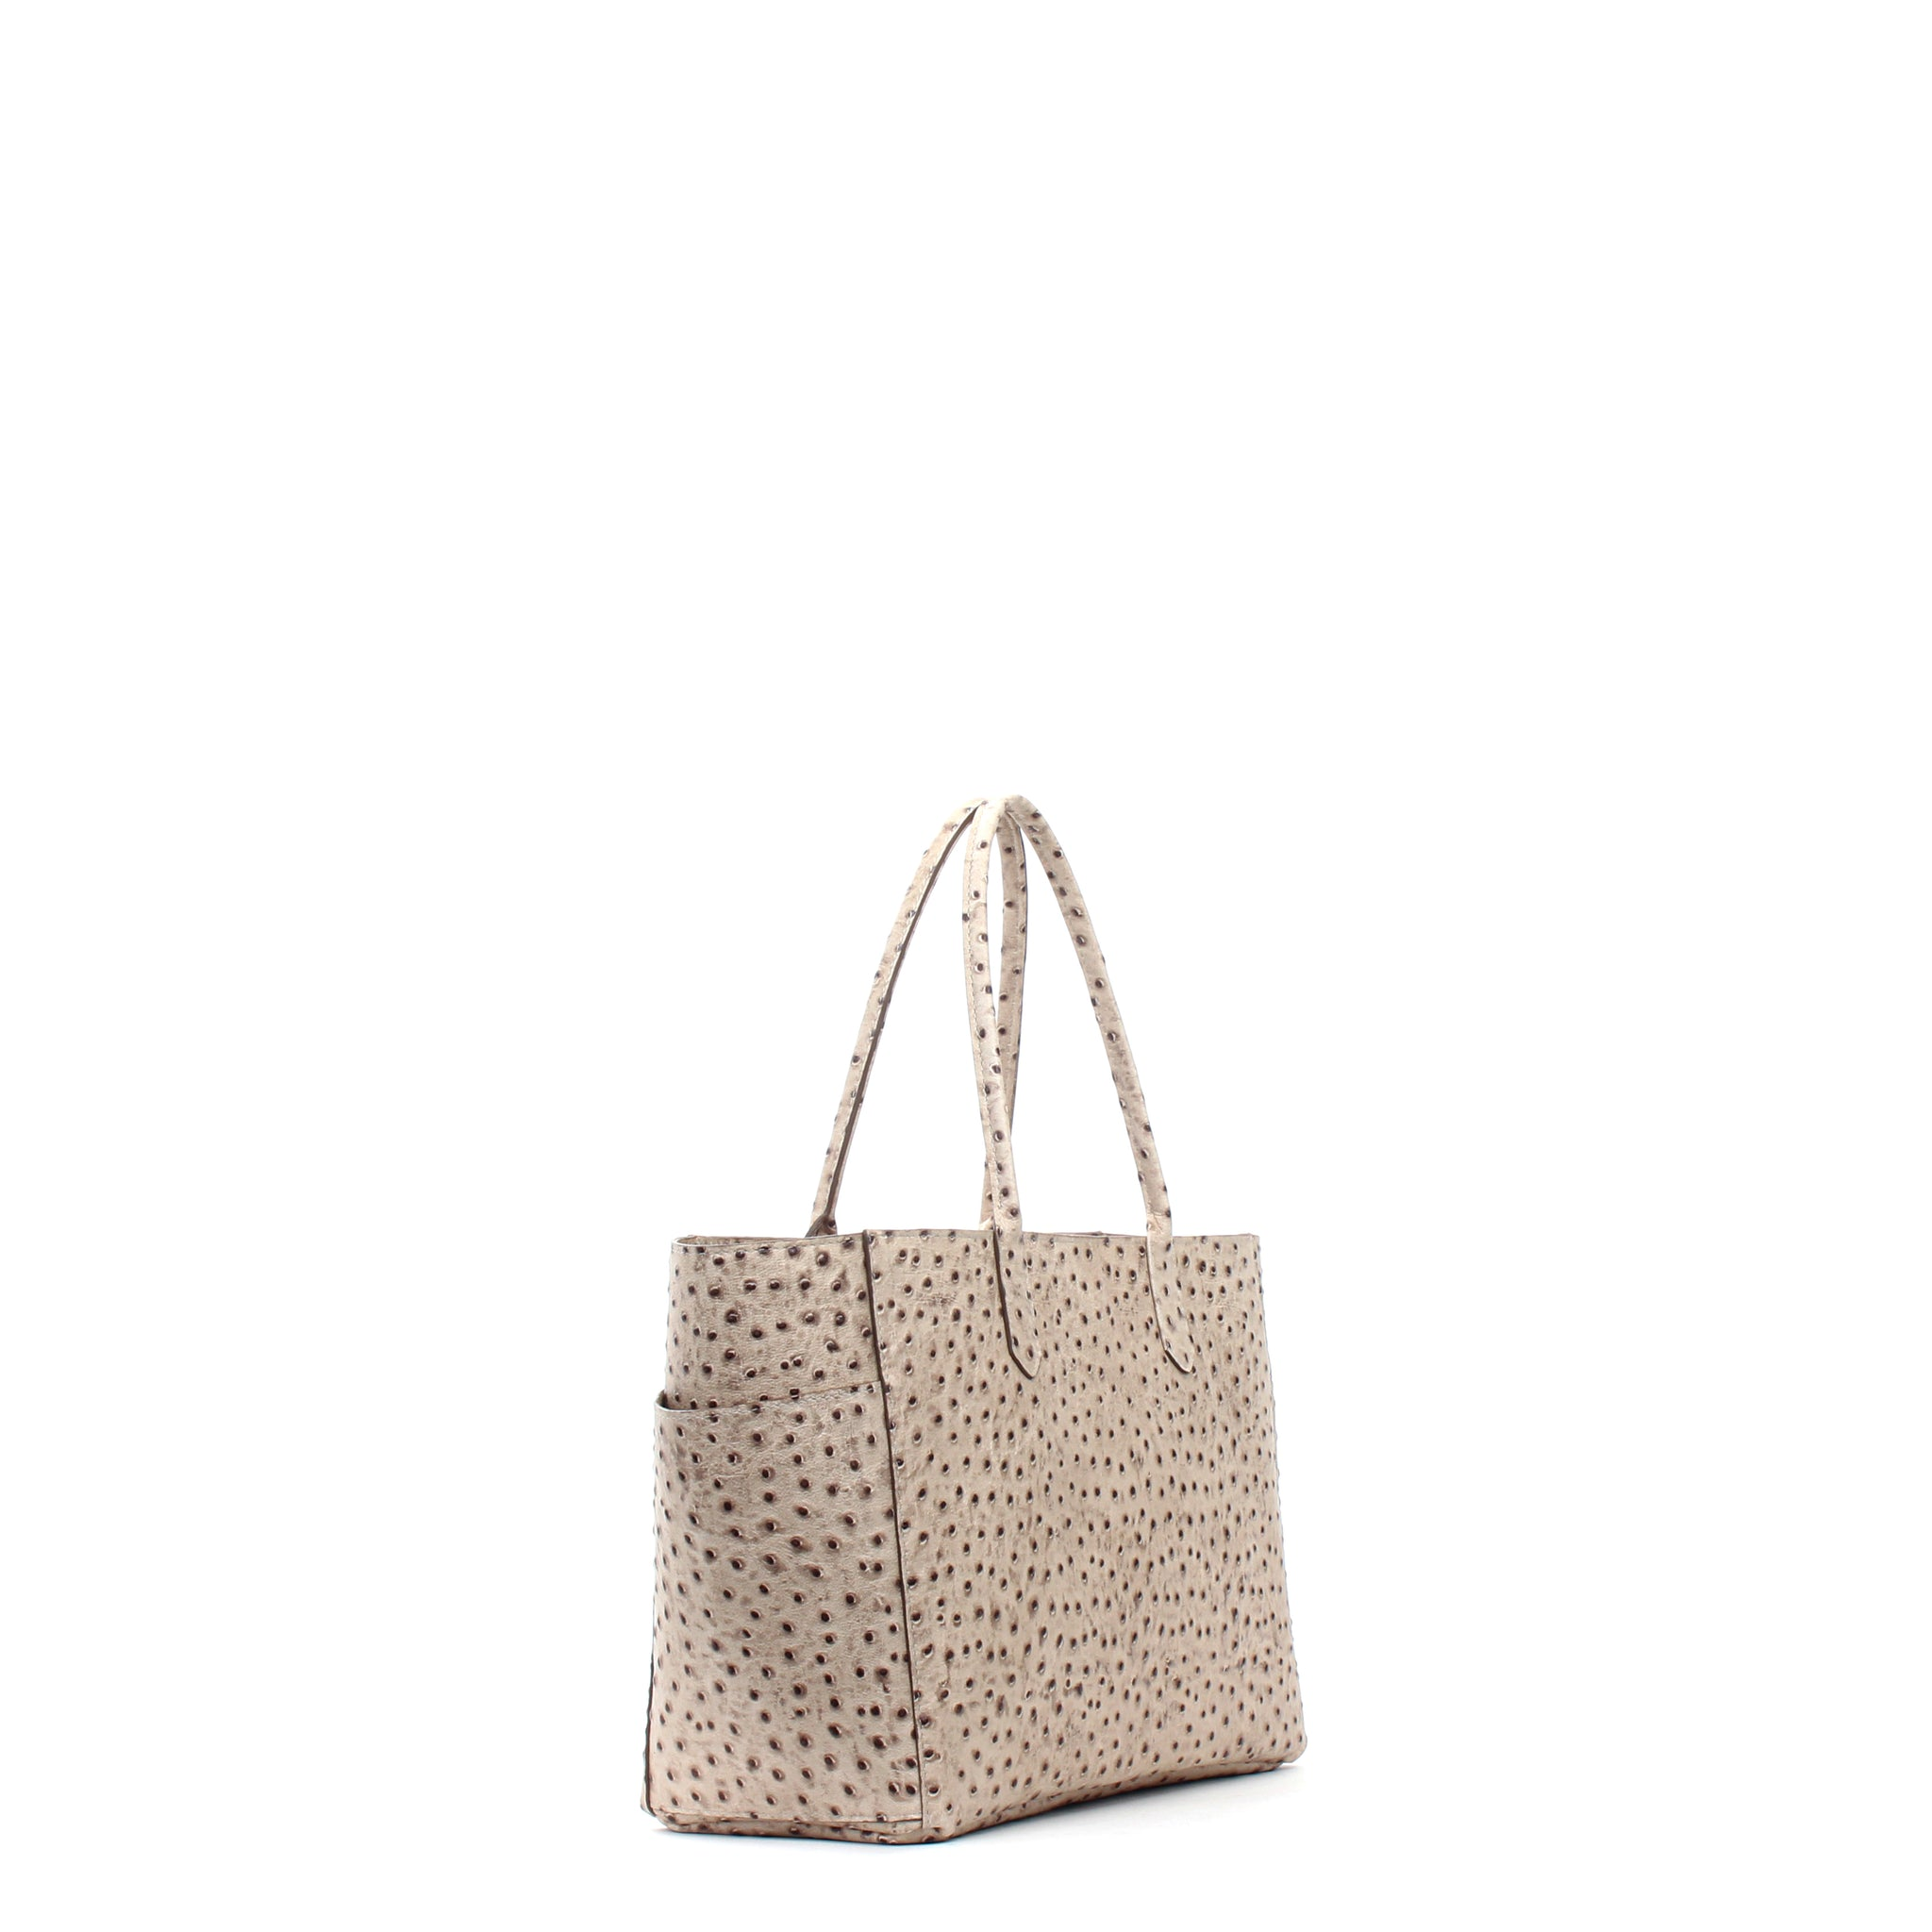 EAST WEST POCKET TOTE SAND EMBOSSED OSTRICH